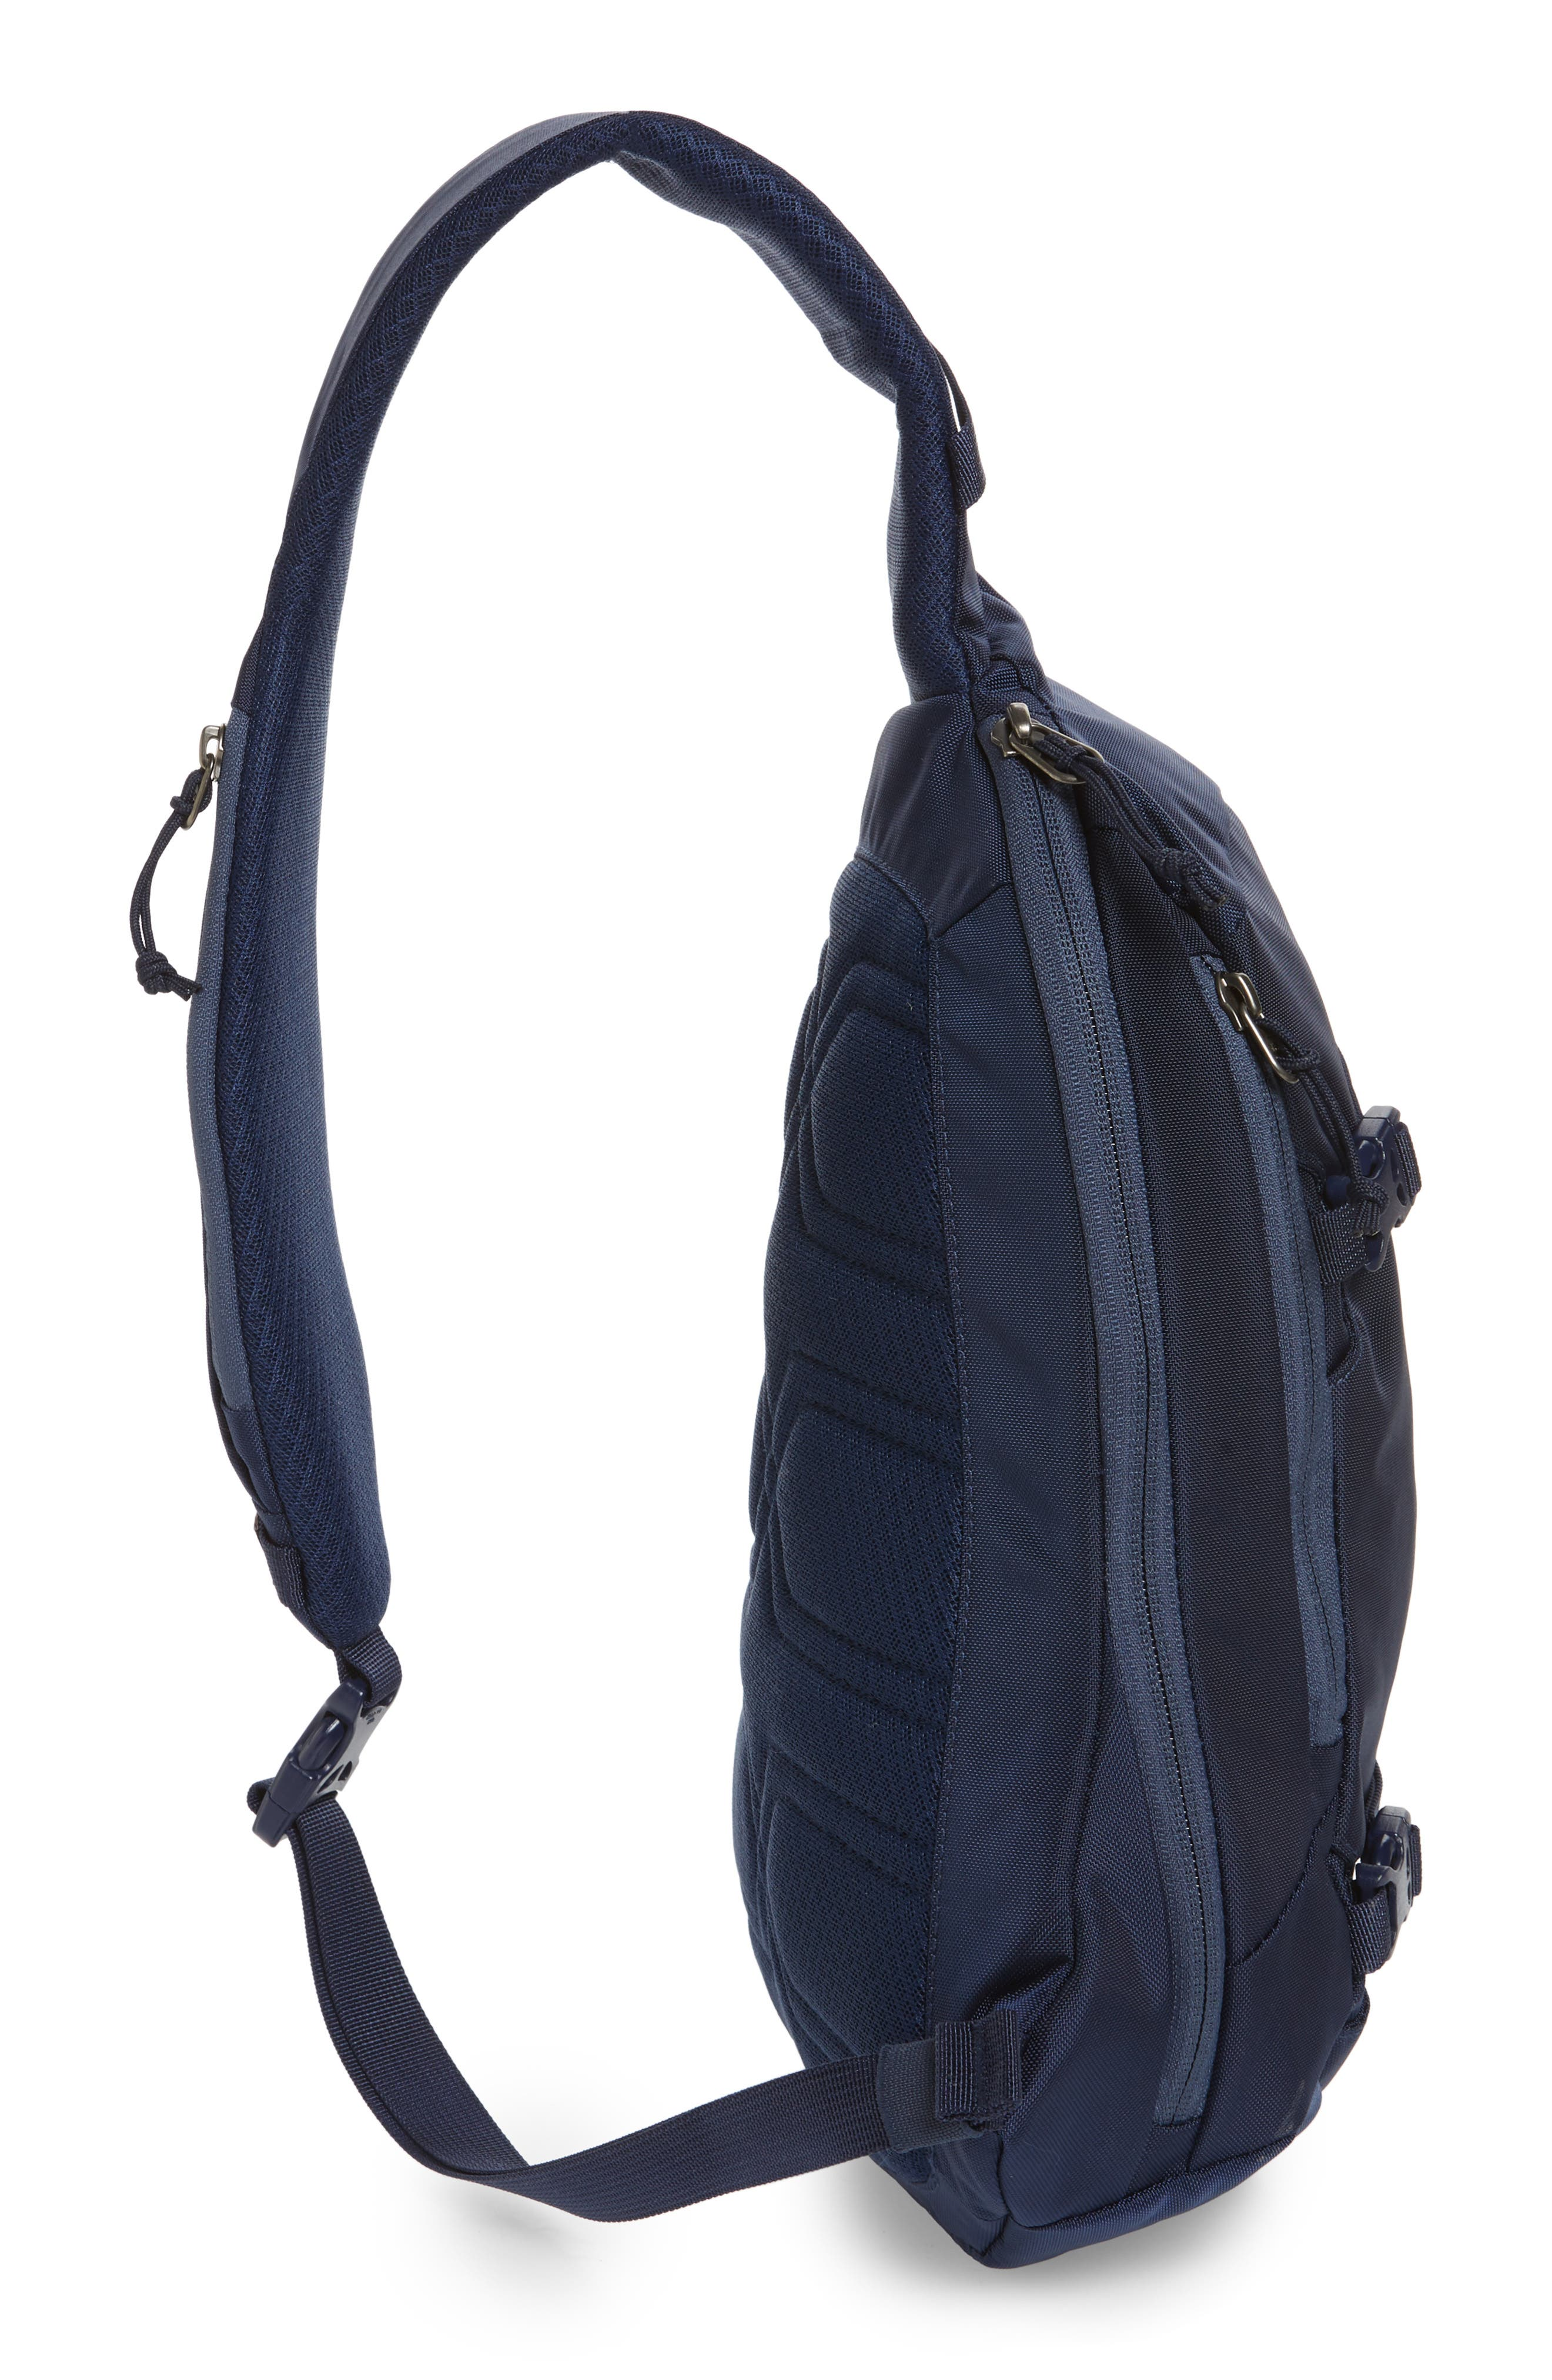 PATAGONIA, Atom 8L Sling Backpack, Alternate thumbnail 6, color, CLASSIC NAVY W/ NAVY